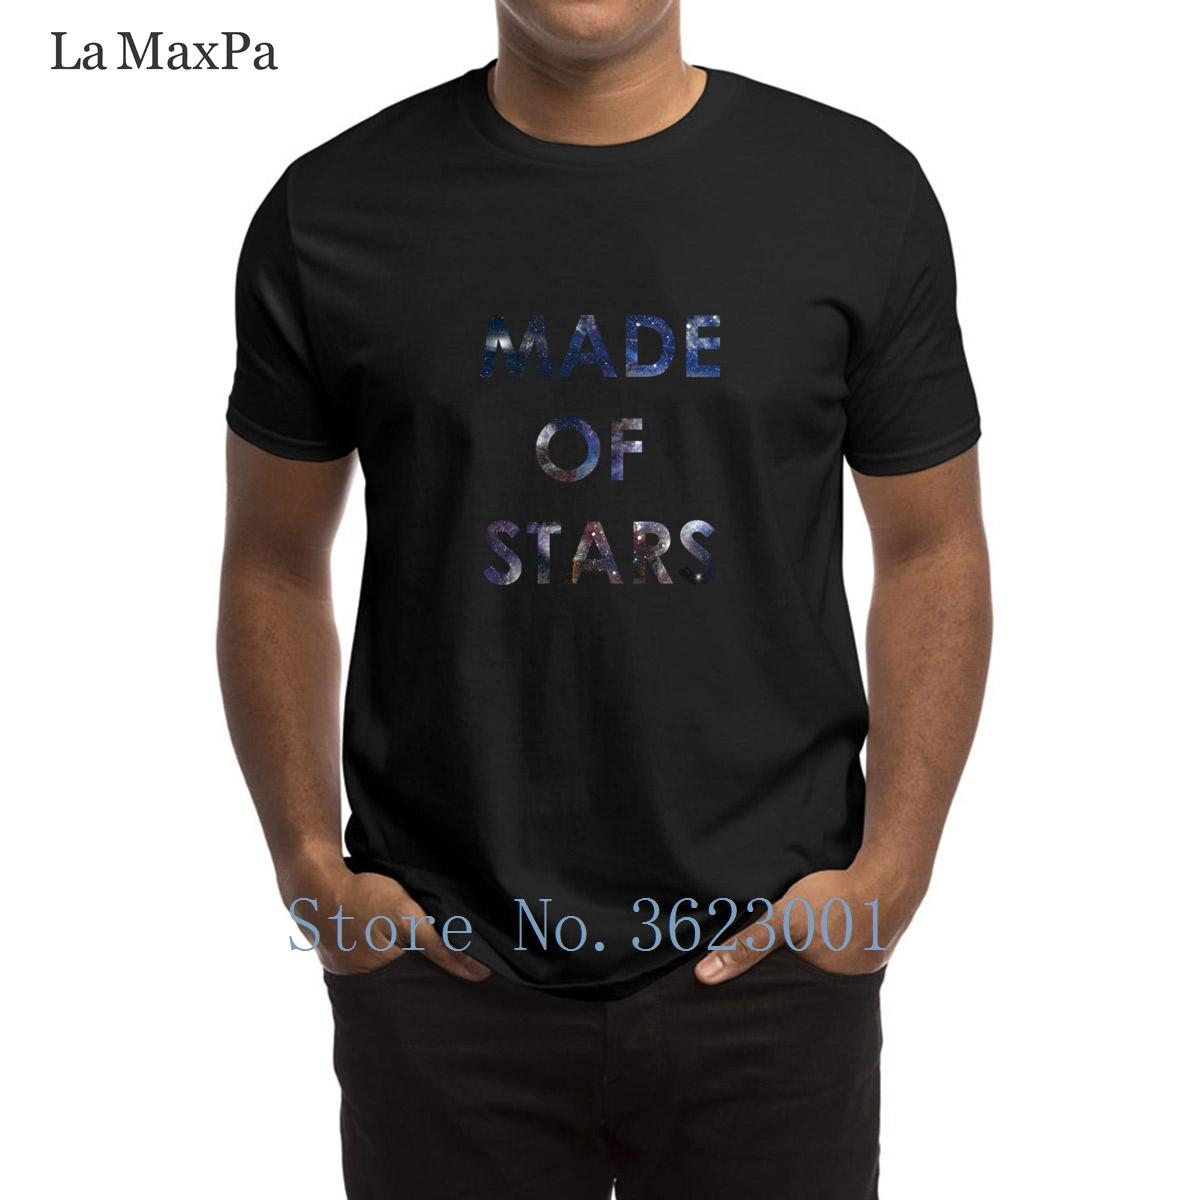 0f0d535b Custom Trend T Shirt Made Of Stars Men'S T Shirt Great 2018 Mens Tshirt New  Style Crew Neck Tee Shirt For Men High Quality Novelty Shirts Original T  Shirts ...